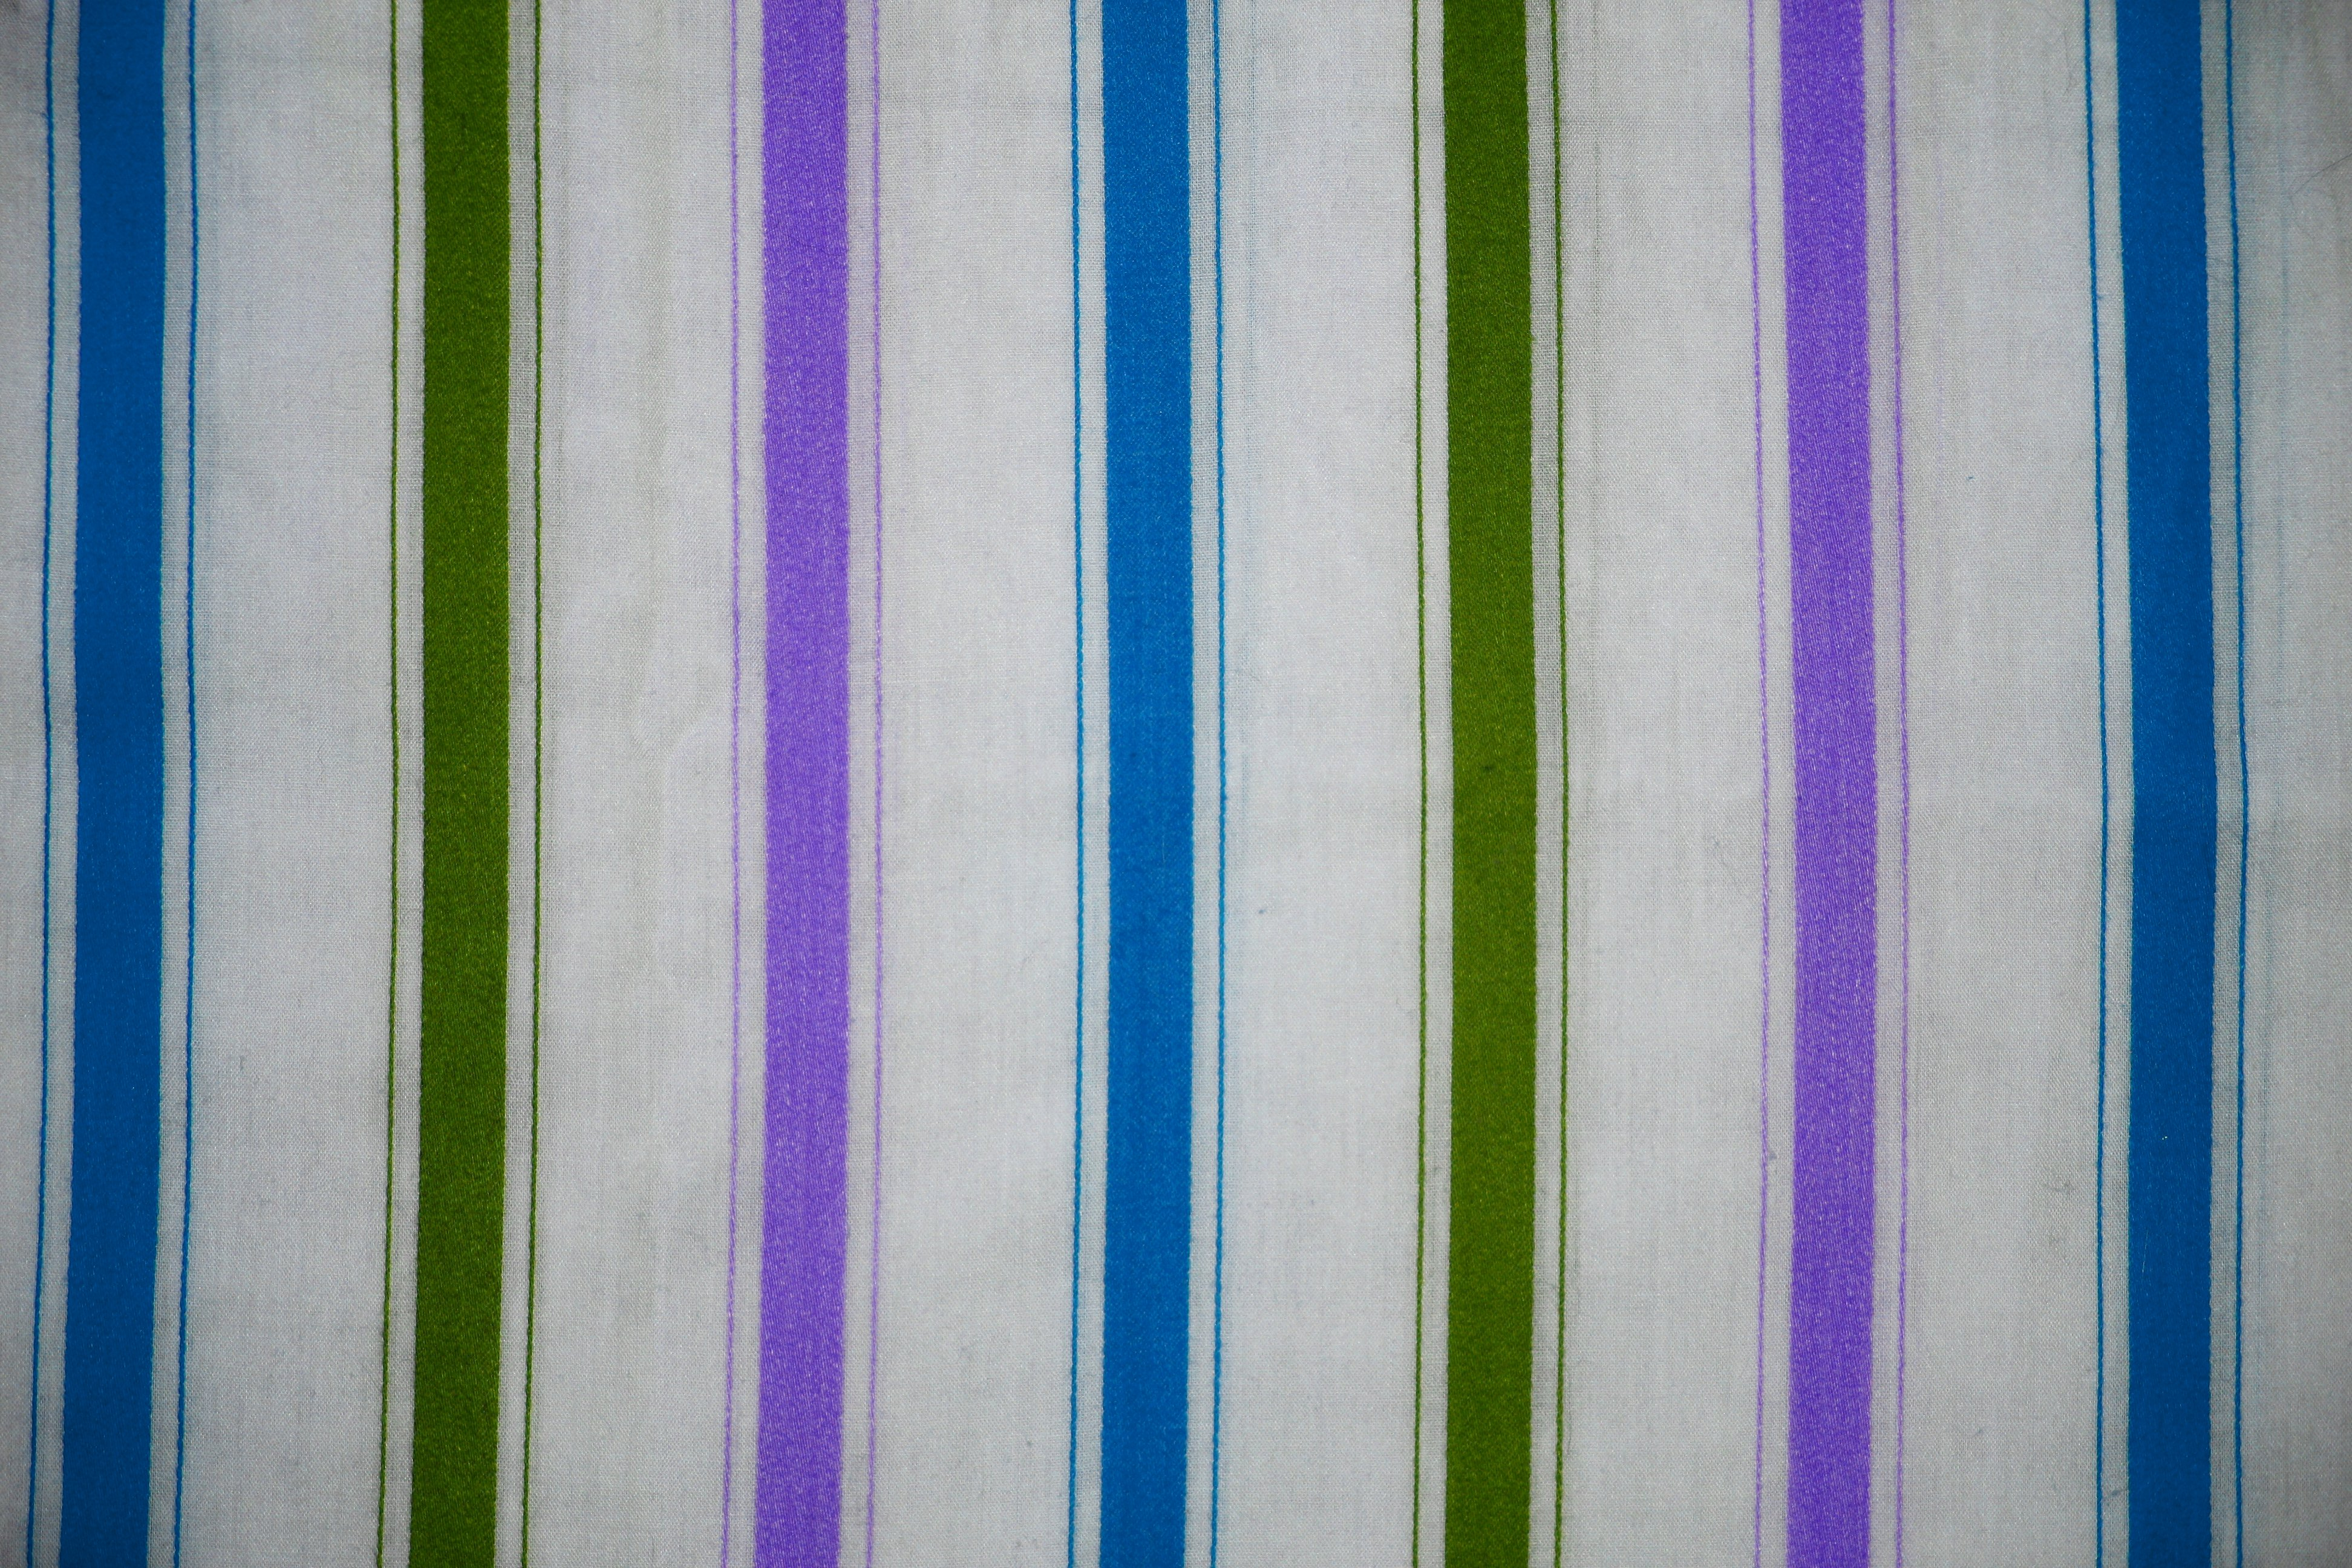 Striped Fabric Texture Green Blue And Purple On White